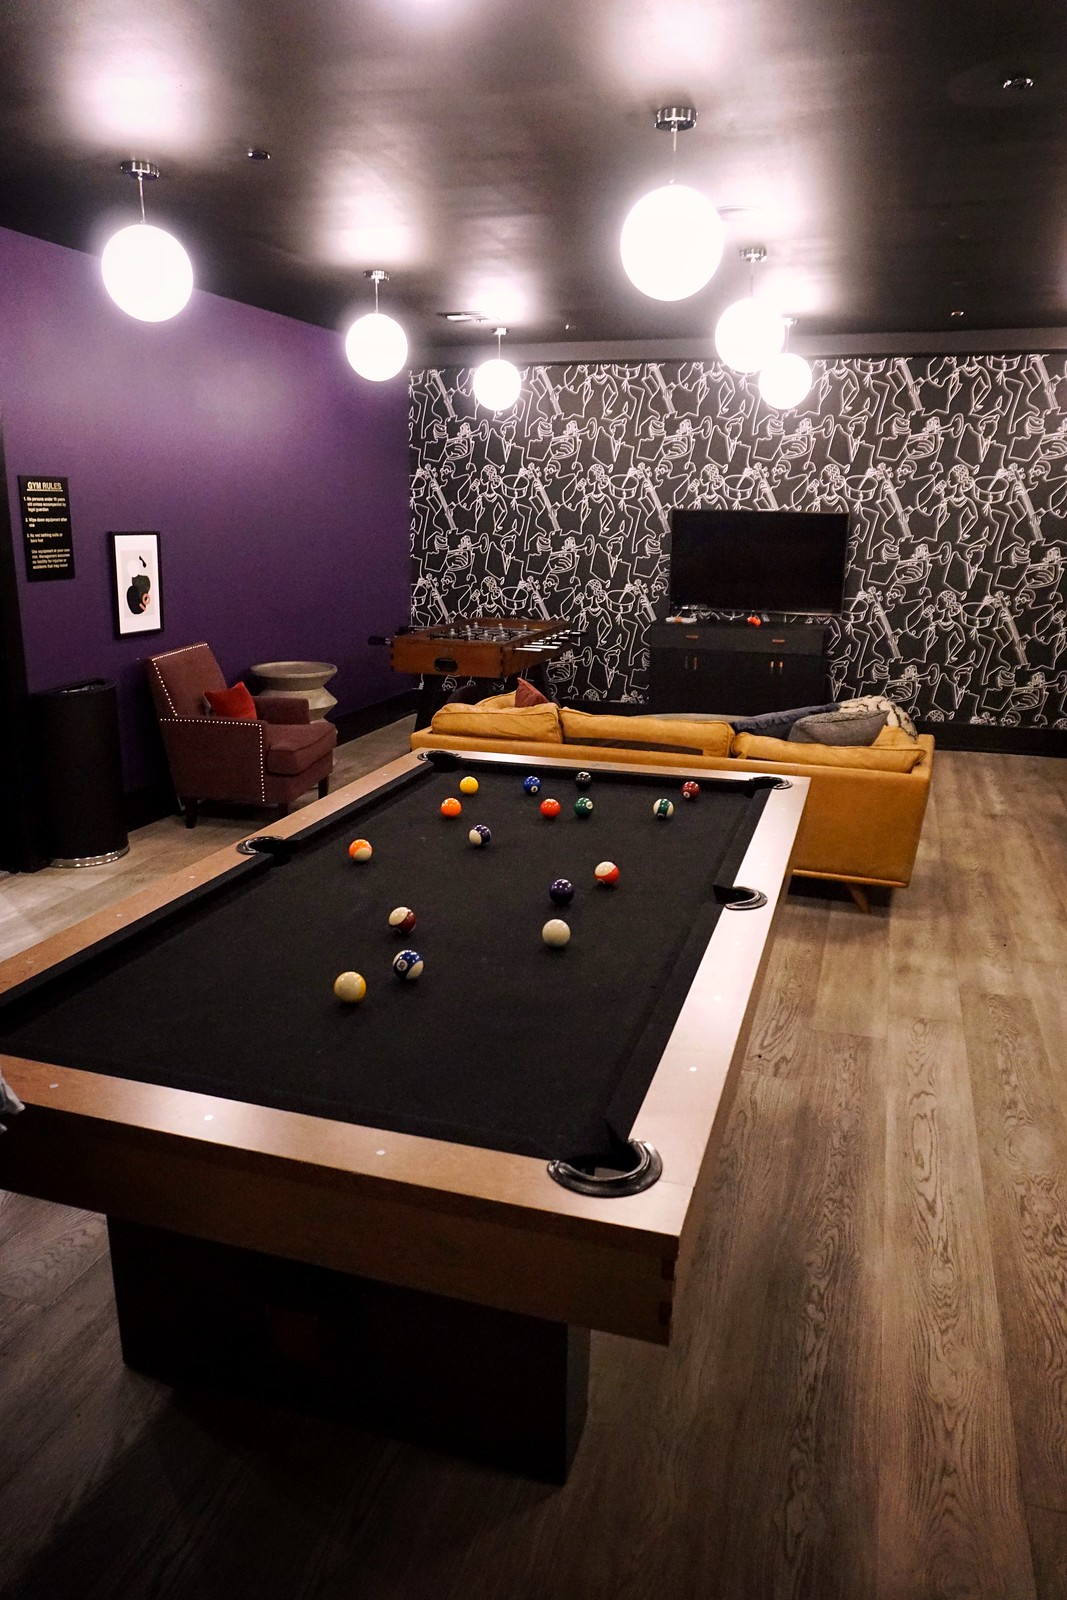 Game Room Tour | Best Hotel in New Orleans, Louisiana | Why Apartment Style Hotels are the Best for Group Trips | Domio Baronne St. Hotel | Where to Stay in New Orleans | NOLA's First Apartment Hotel